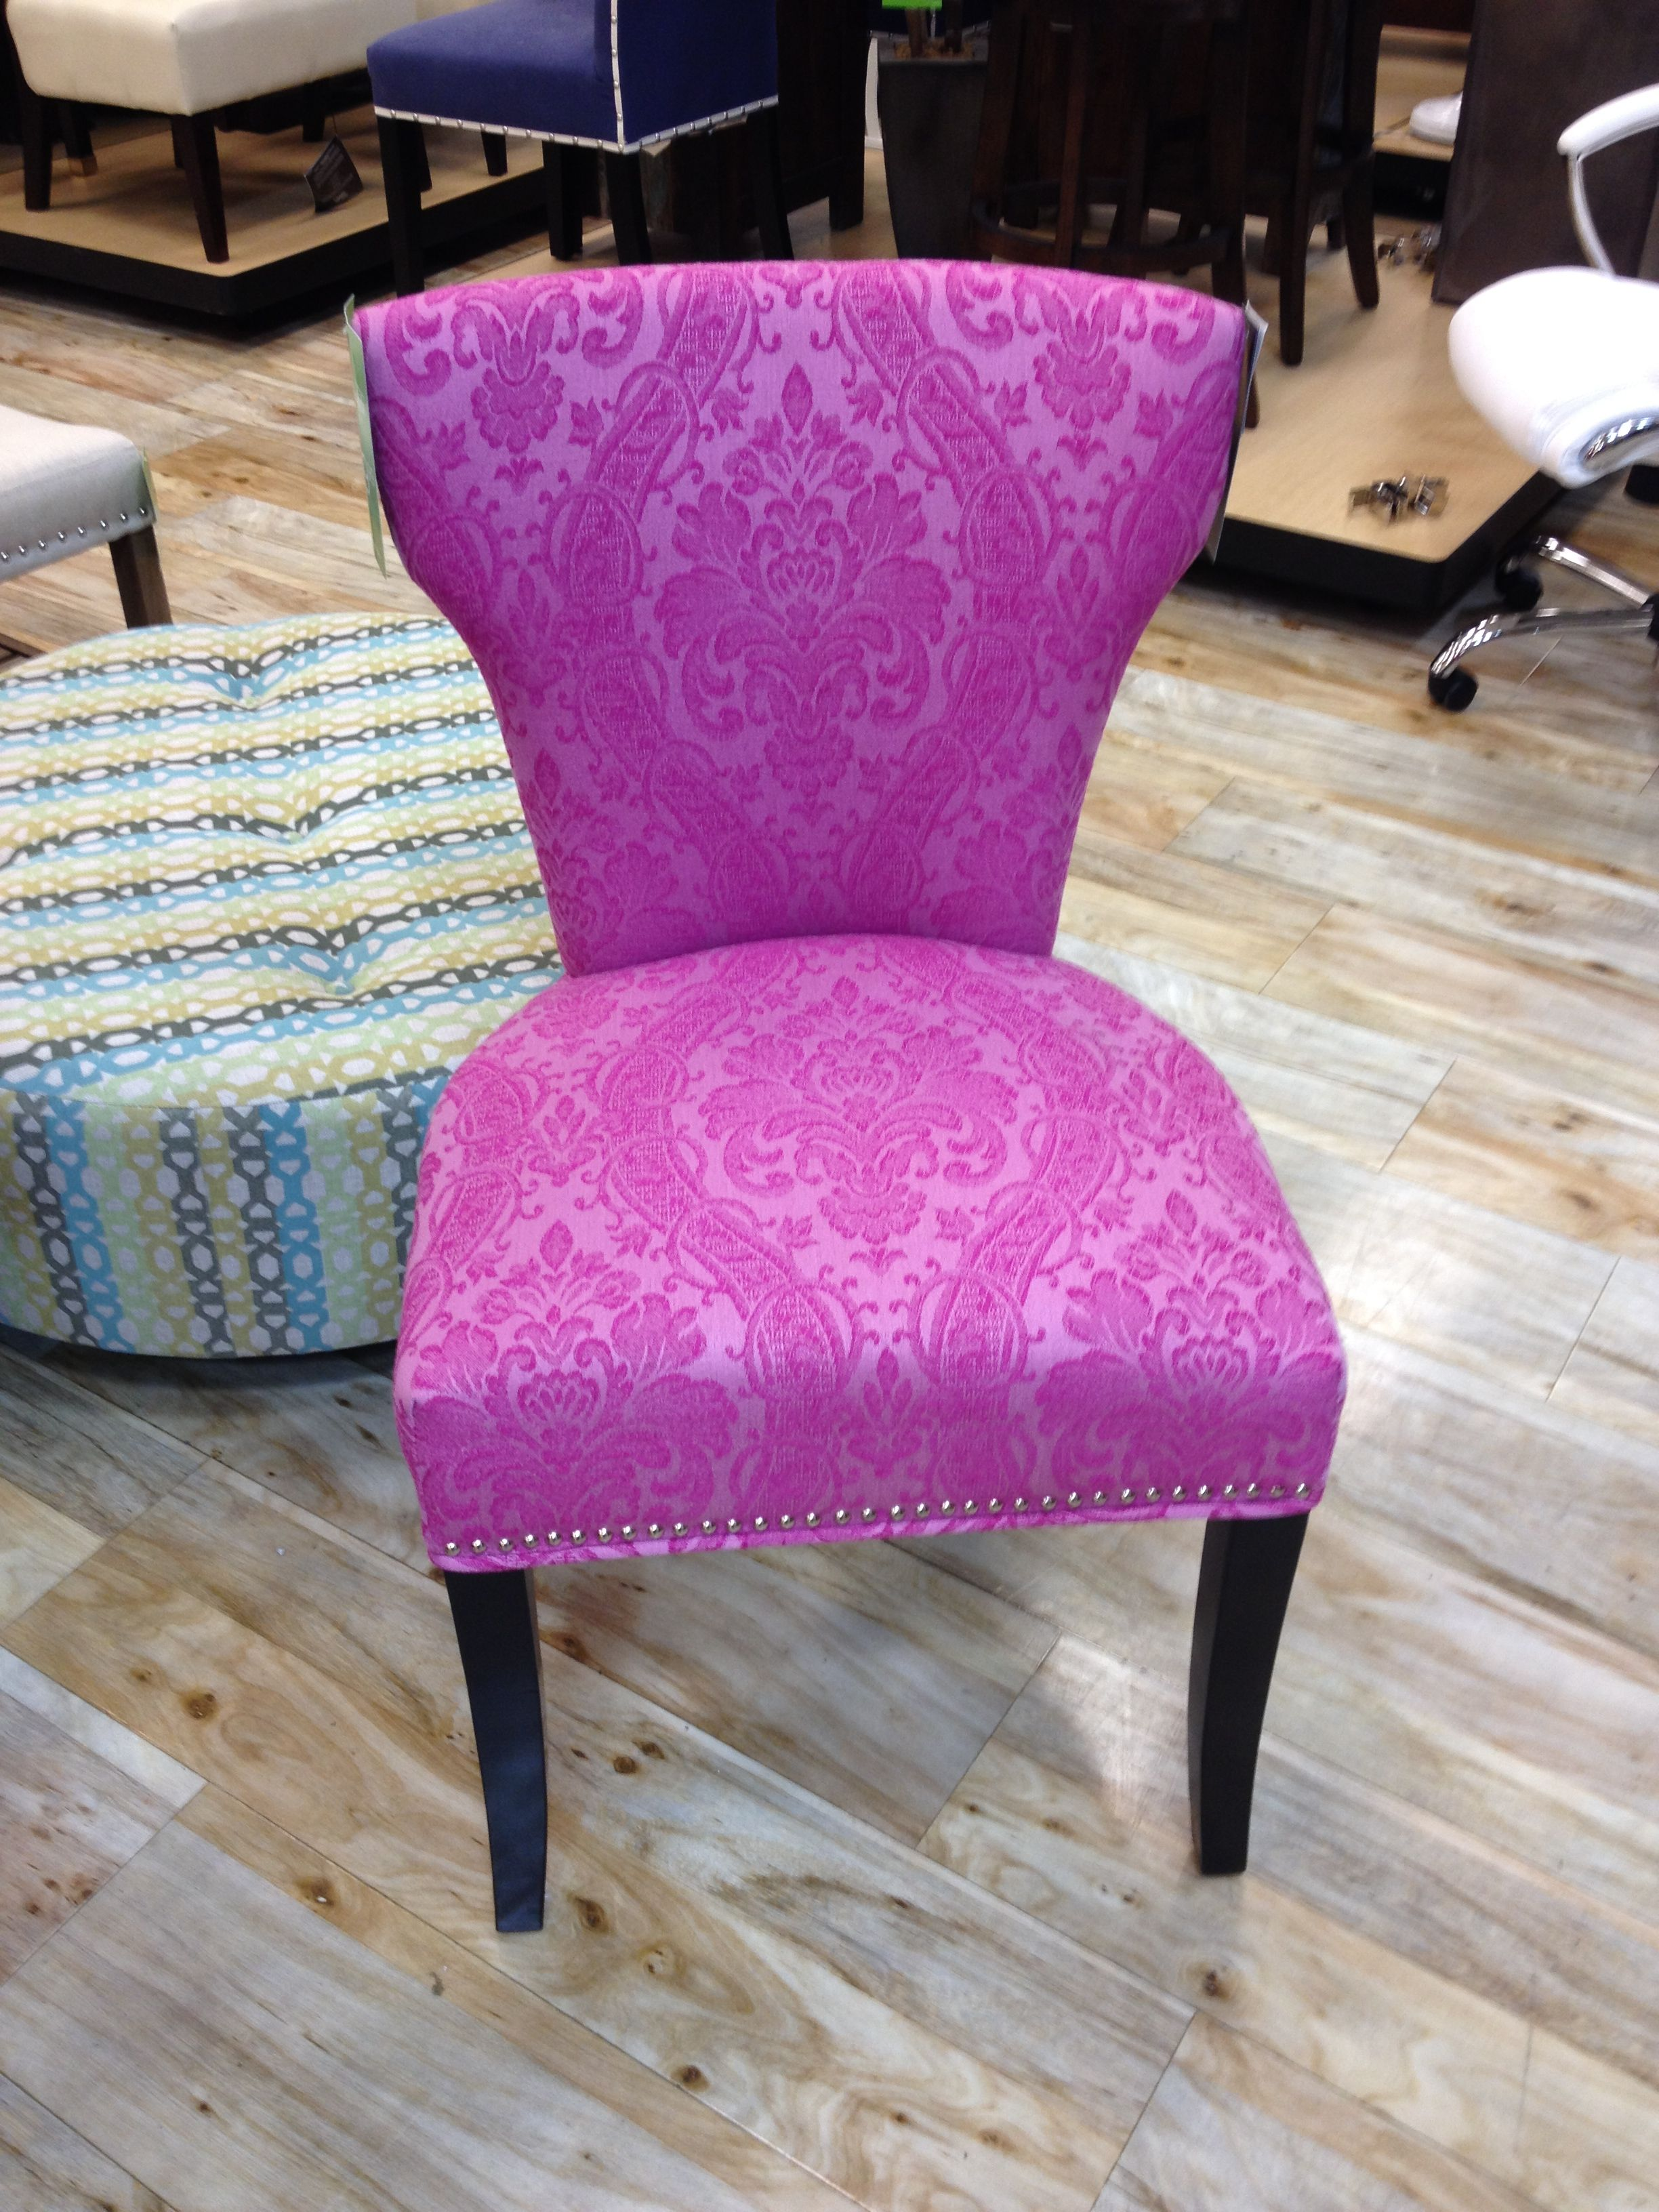 Cynthia Rowley Chairs At Marshalls Chair Covers Grand Rapids Home Goods Upholstered Shapeyourminds